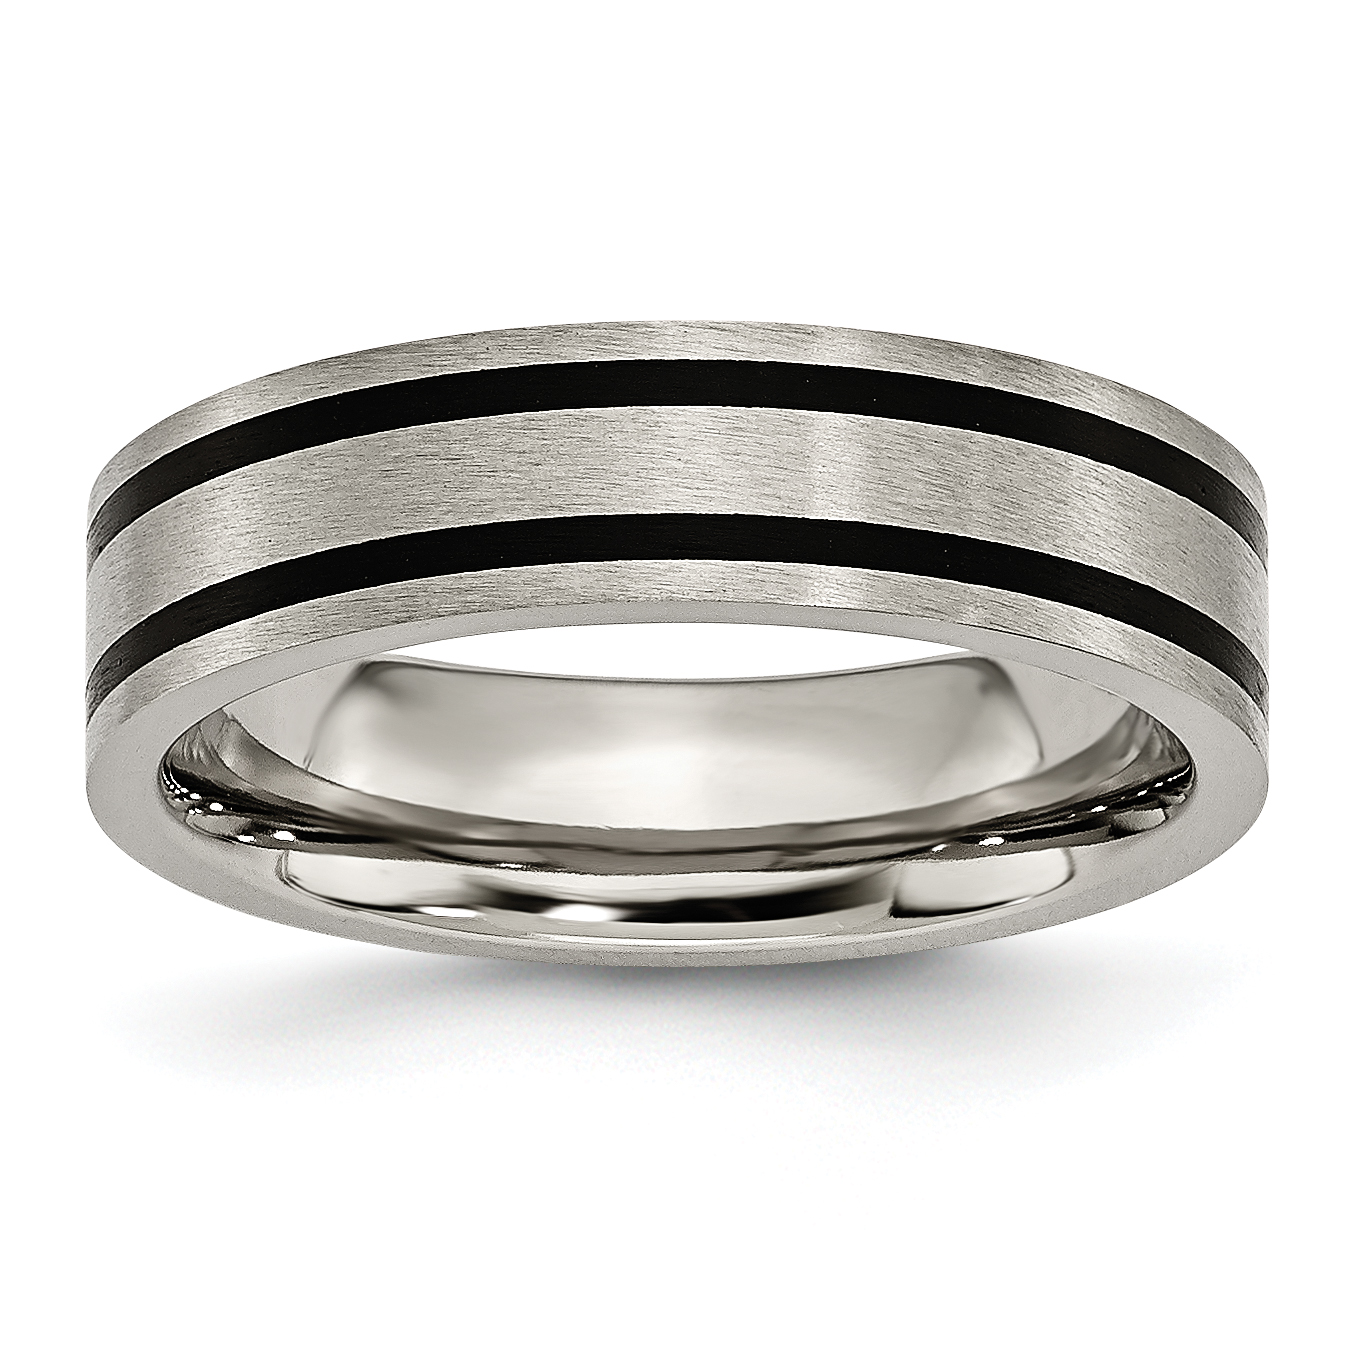 Titanium Brushed Enameled Flat 6mm Wedding Ring Band Size 7.00 Fashion Jewelry Gifts For Women For Her - image 6 de 6